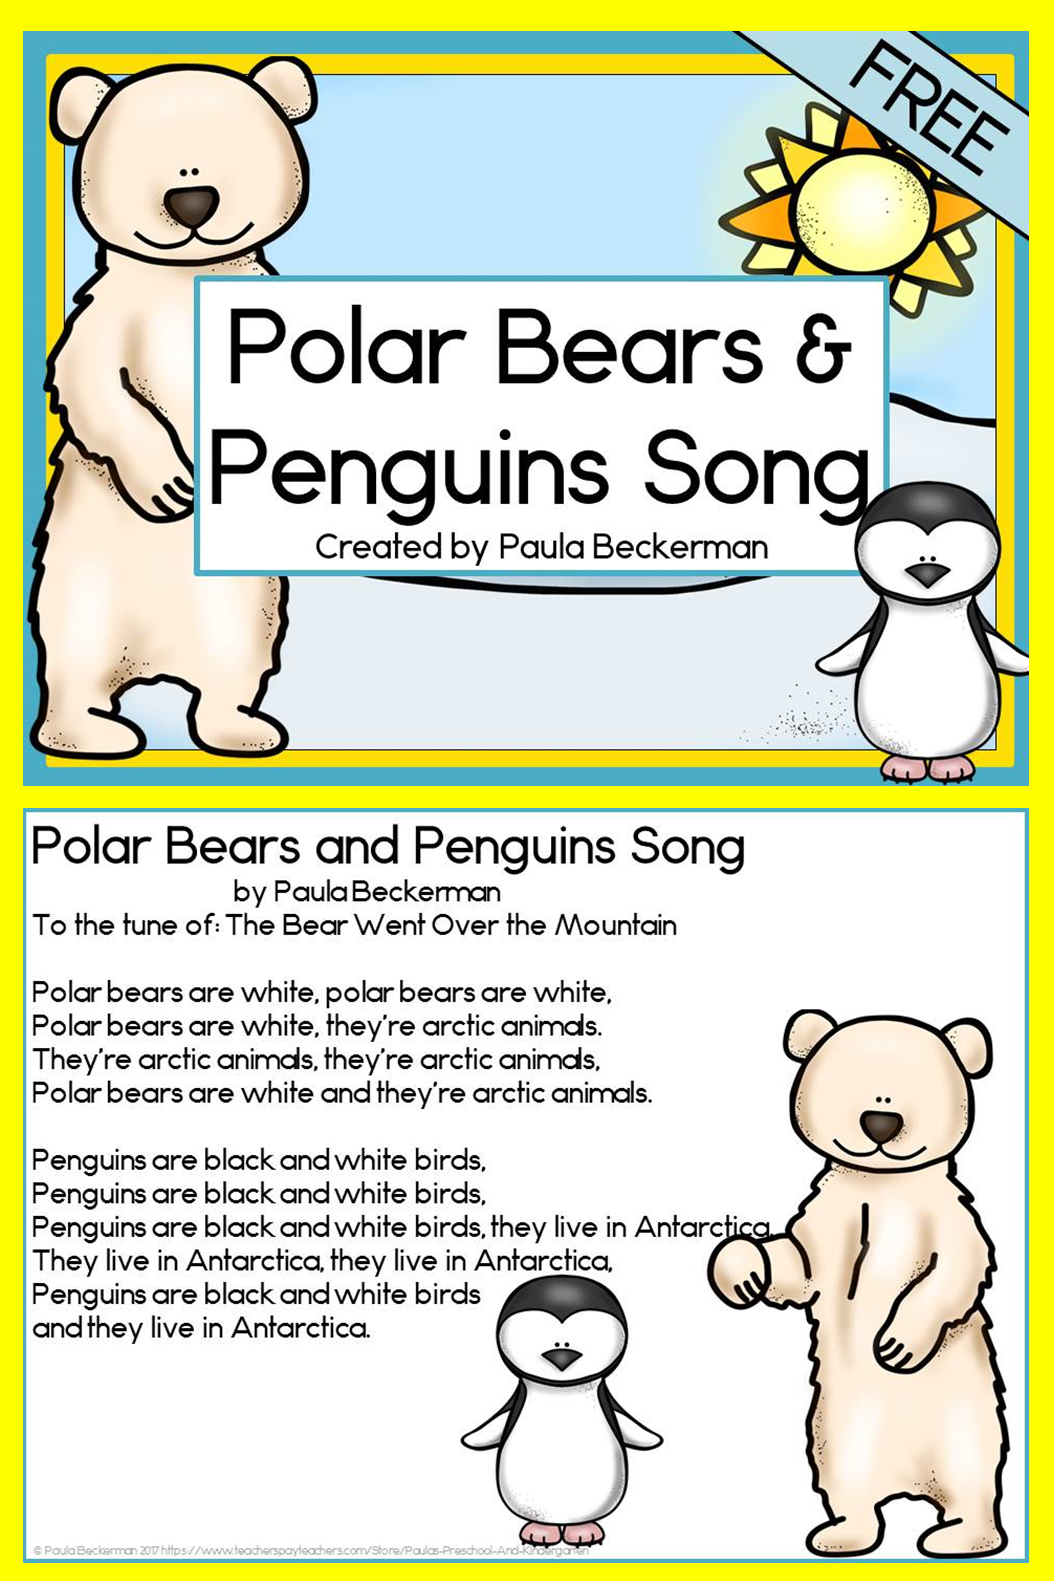 Polar Bears and Penguins Song FREE Penguin songs